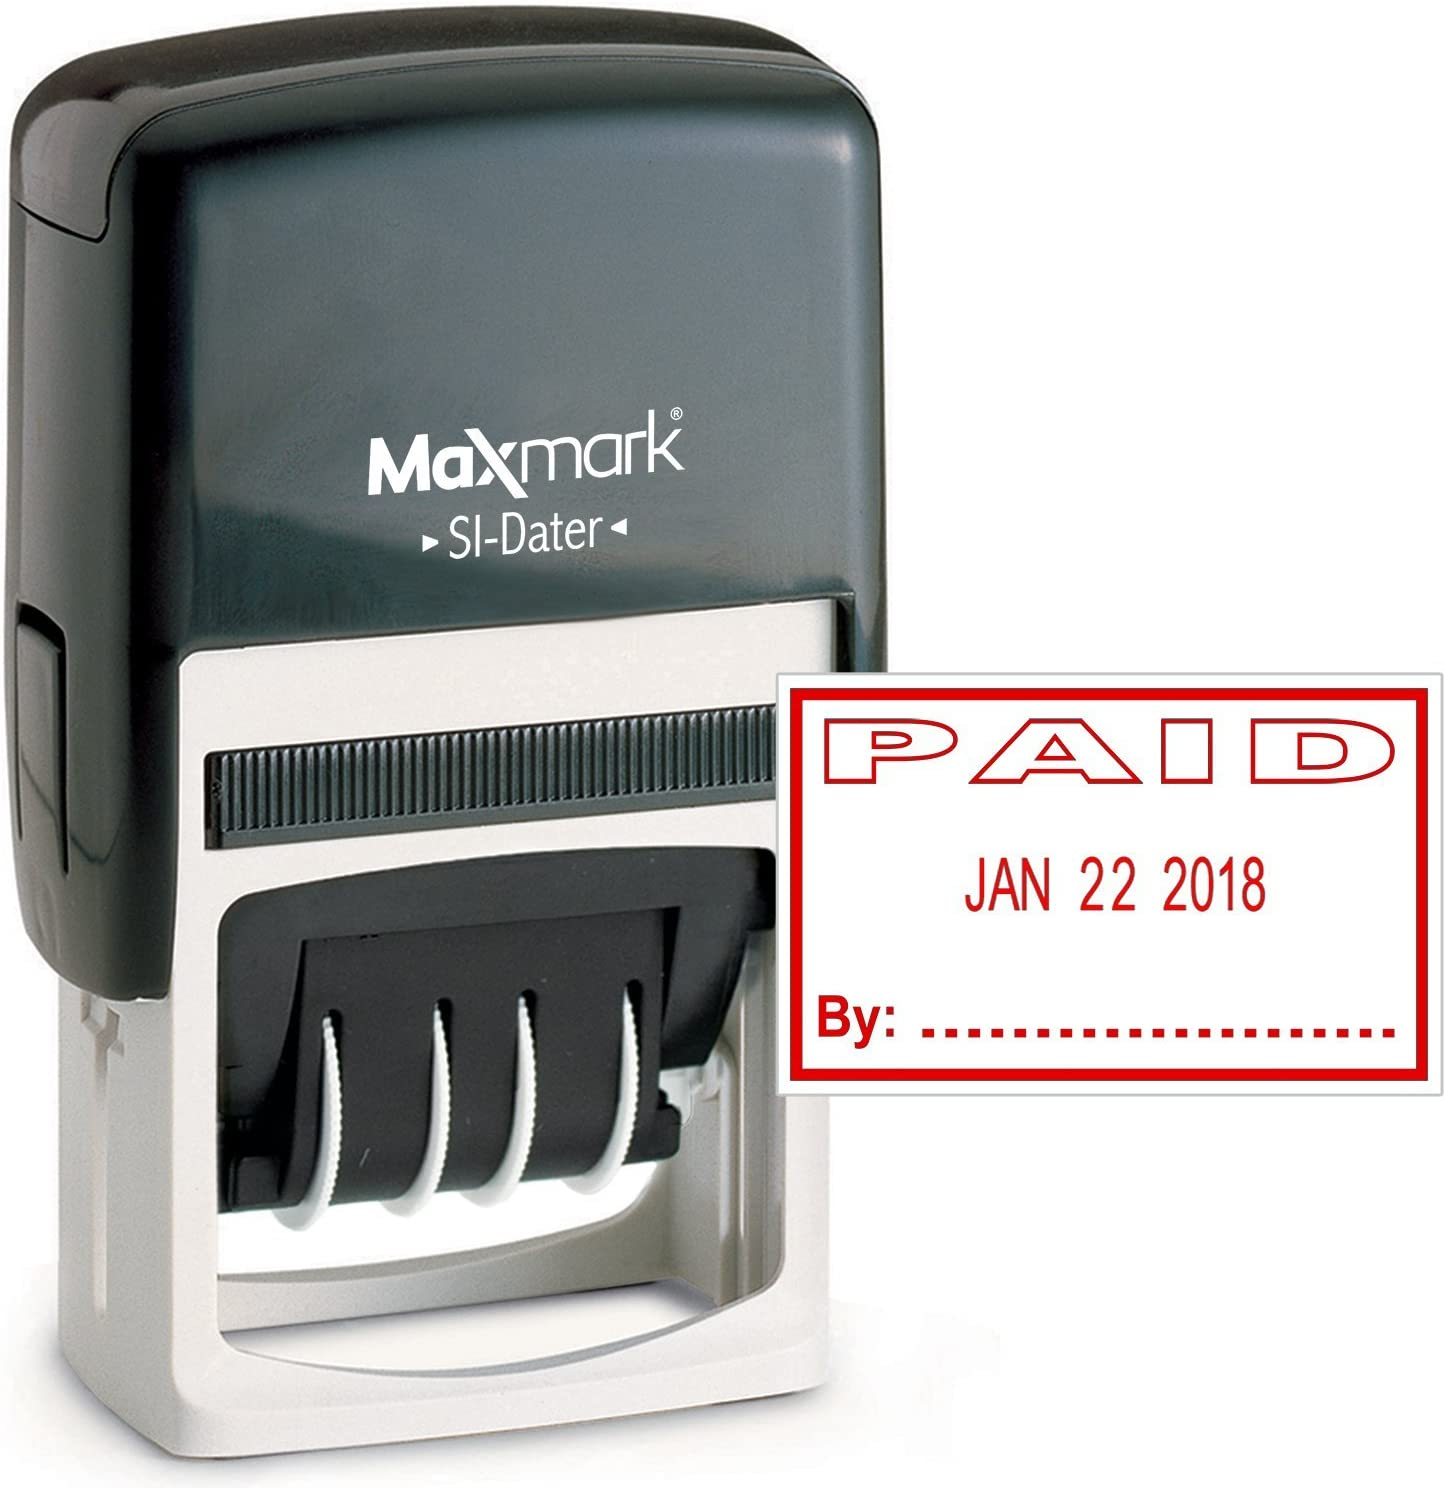 MaxMark Office Date Stamp with Paid Self Inking Date Stamp - RED Ink